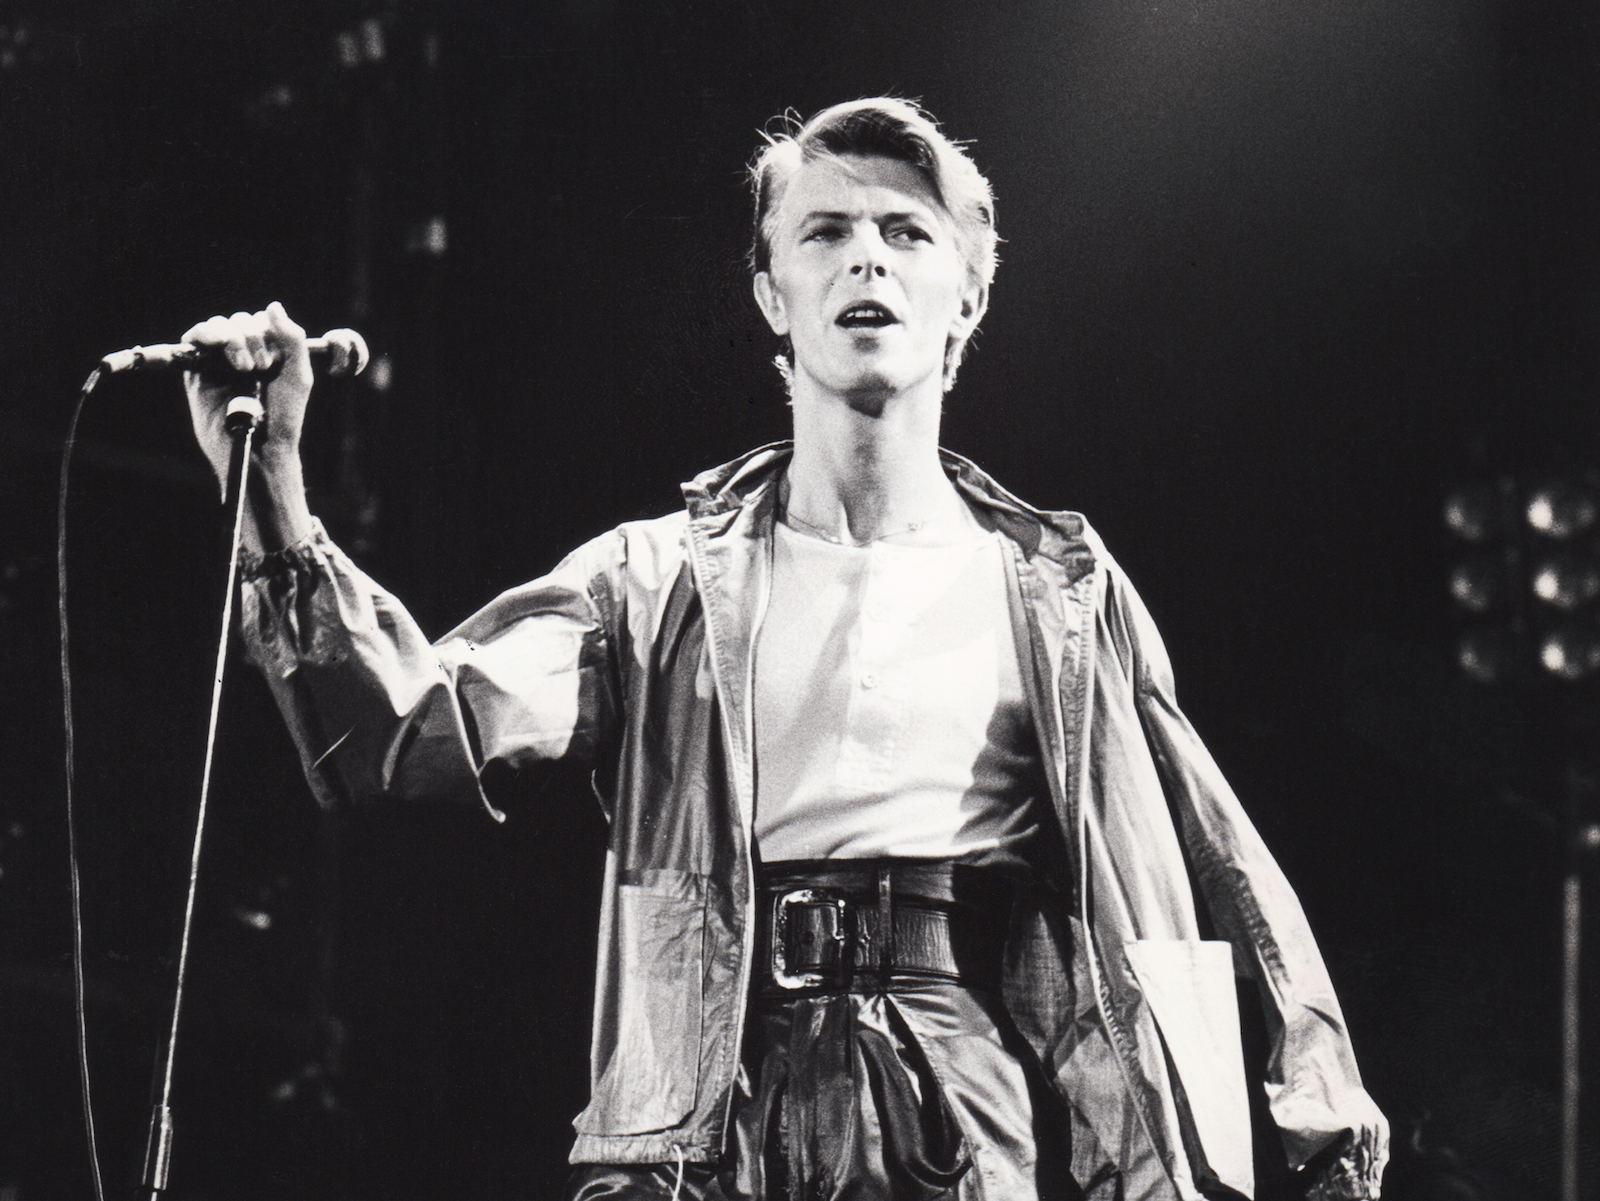 Drink to David Bowie With Cocktails Inspired by Ziggy Stardust and Major Tom